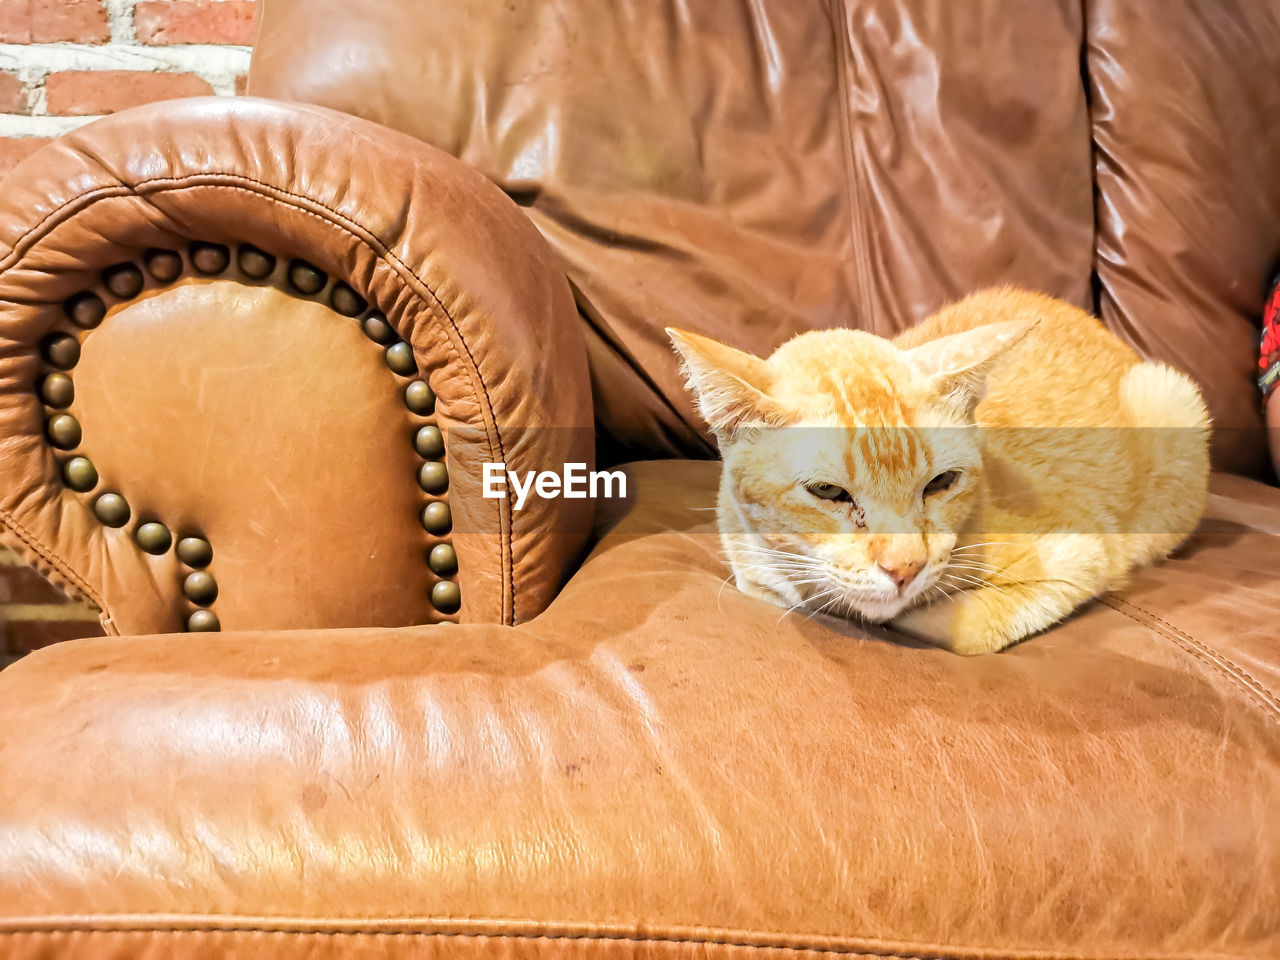 CAT RESTING ON CHAIR